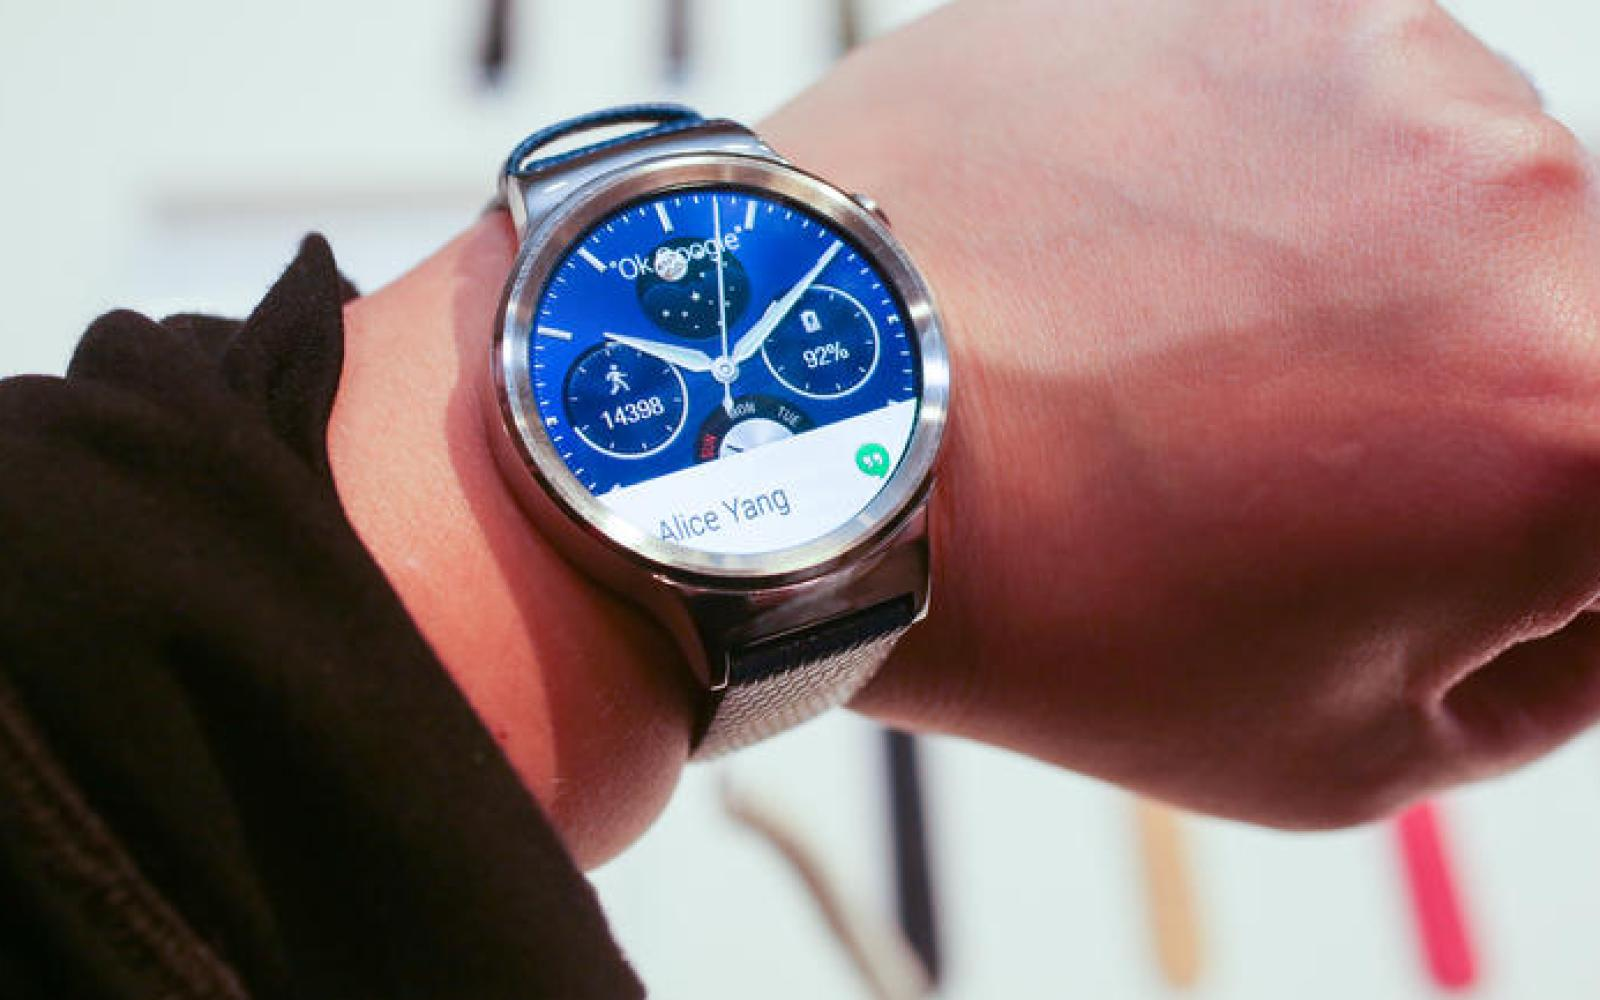 Huawei Watch said to be delayed until September or October